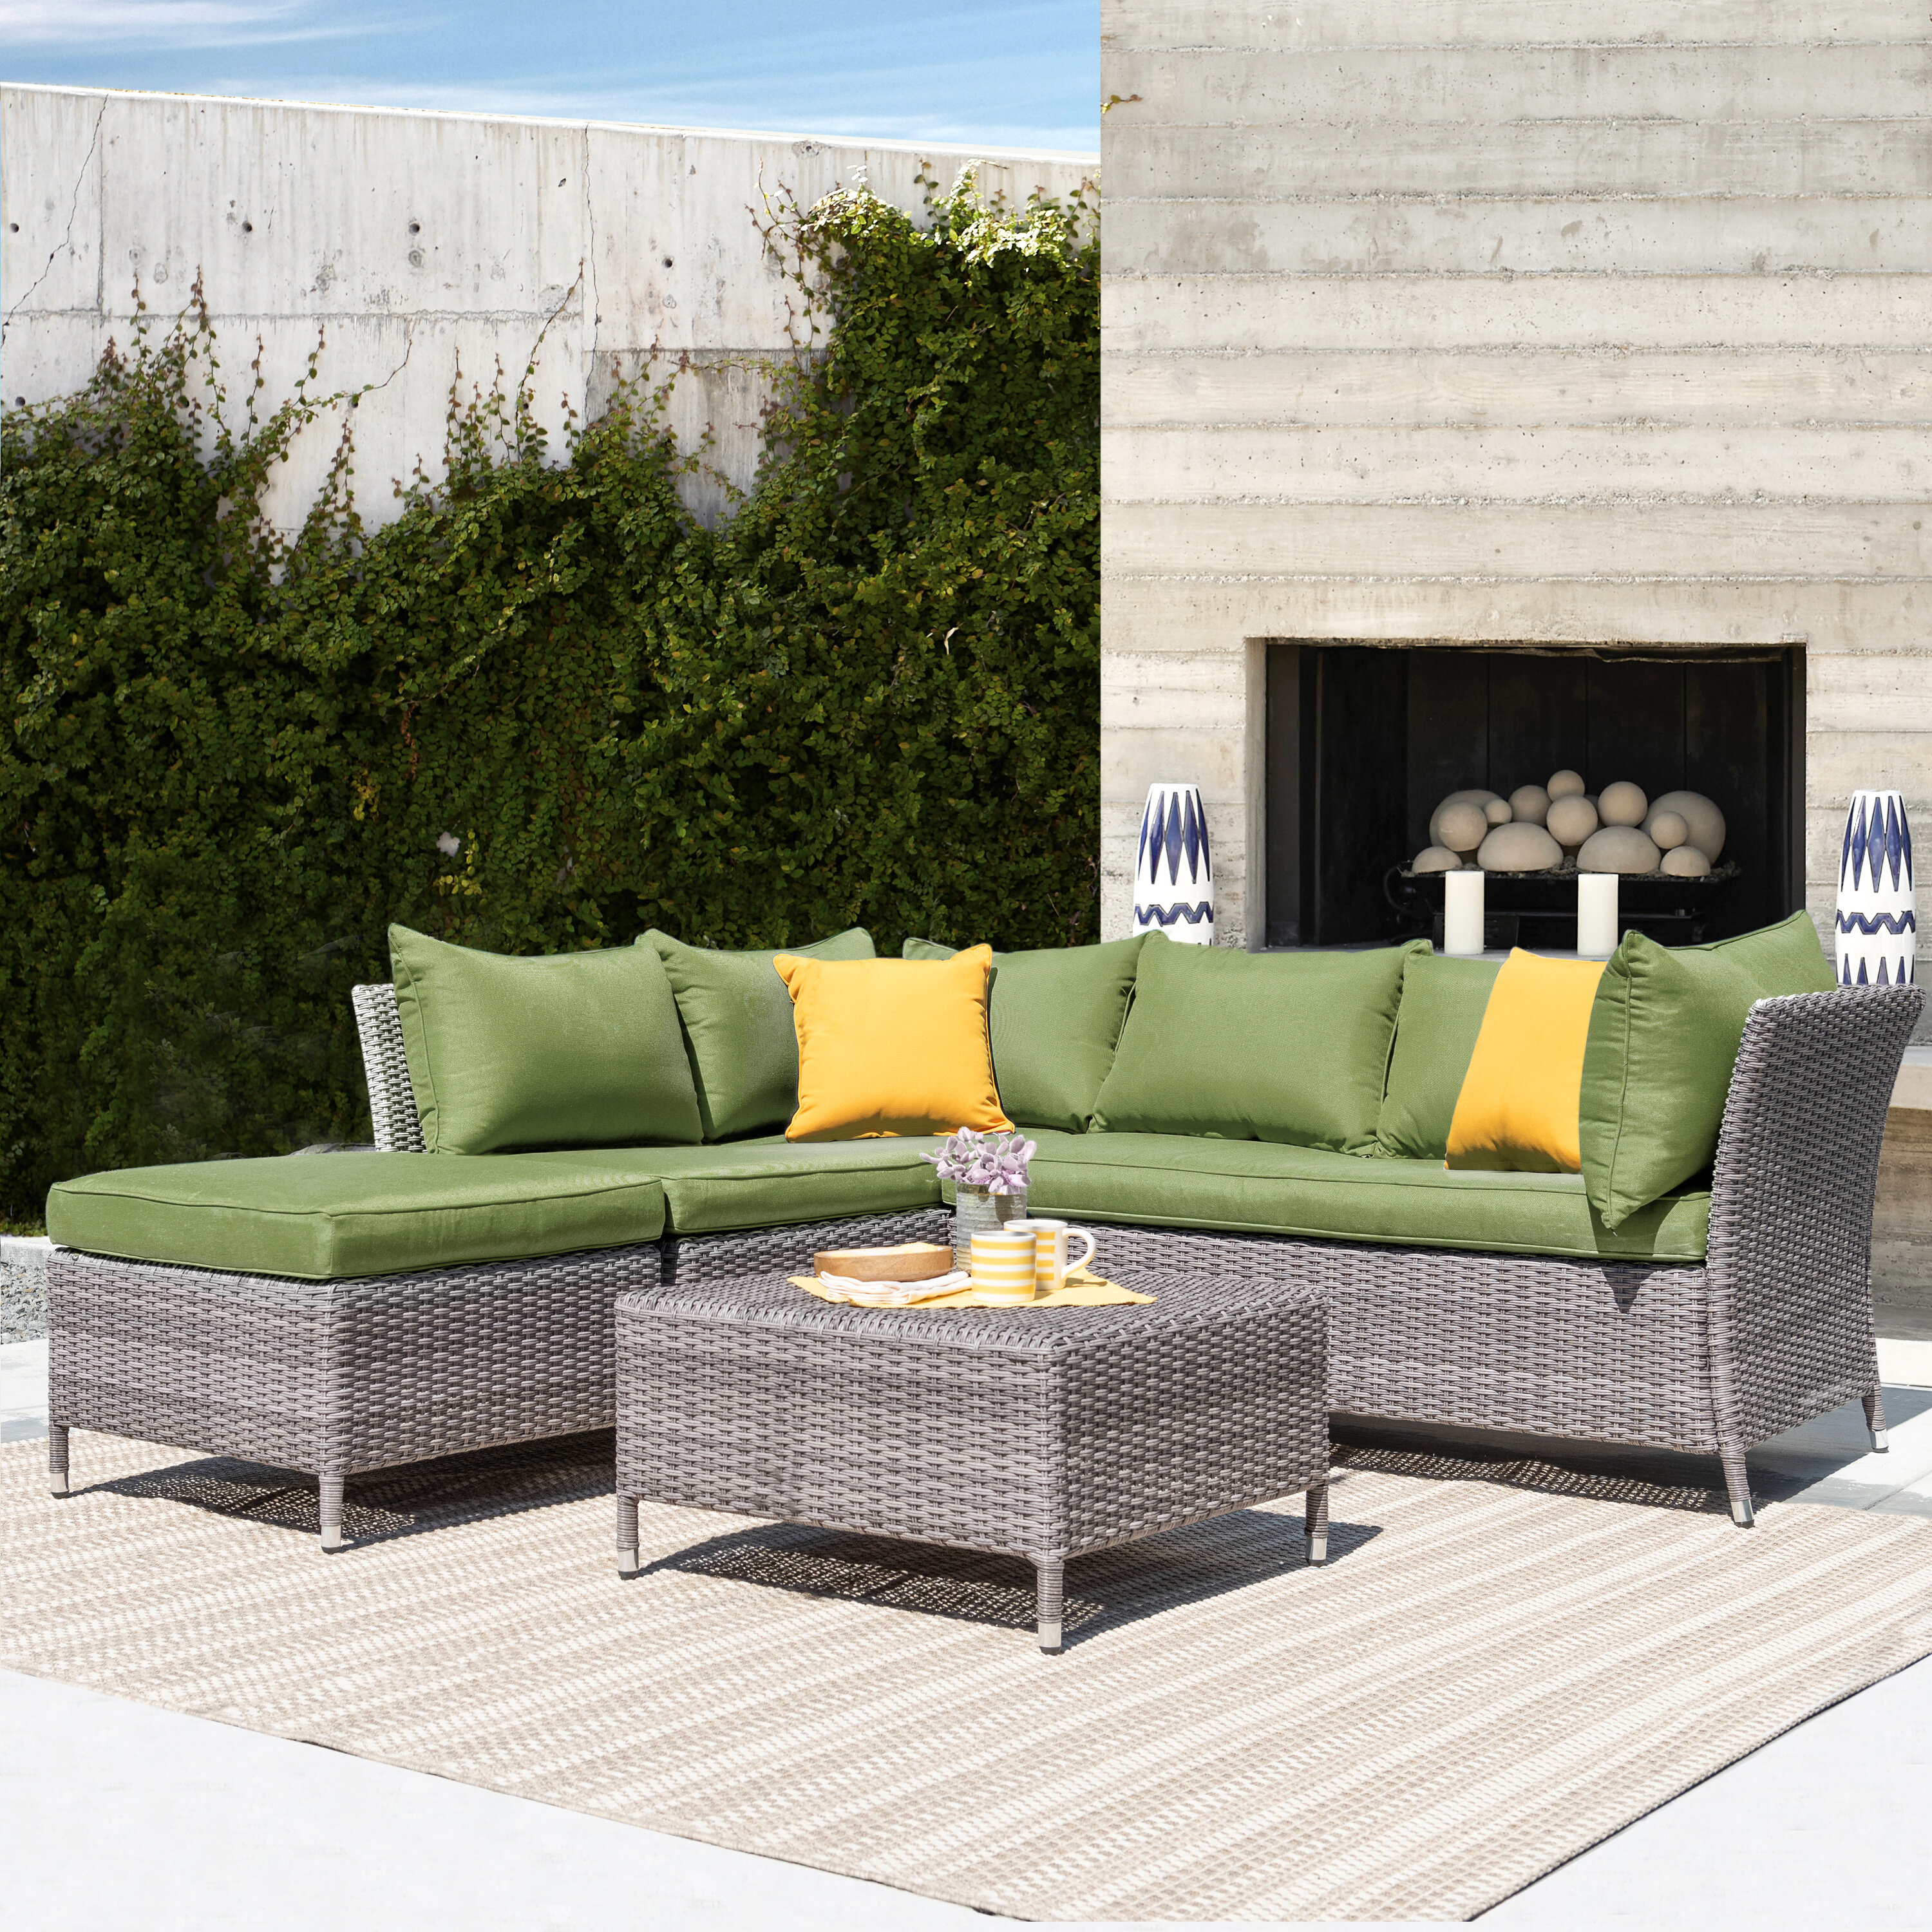 Ivy Bronx Ellenburg 4 Piece Rattan Sectional Seating Group With Cushions Reviews Wayfair